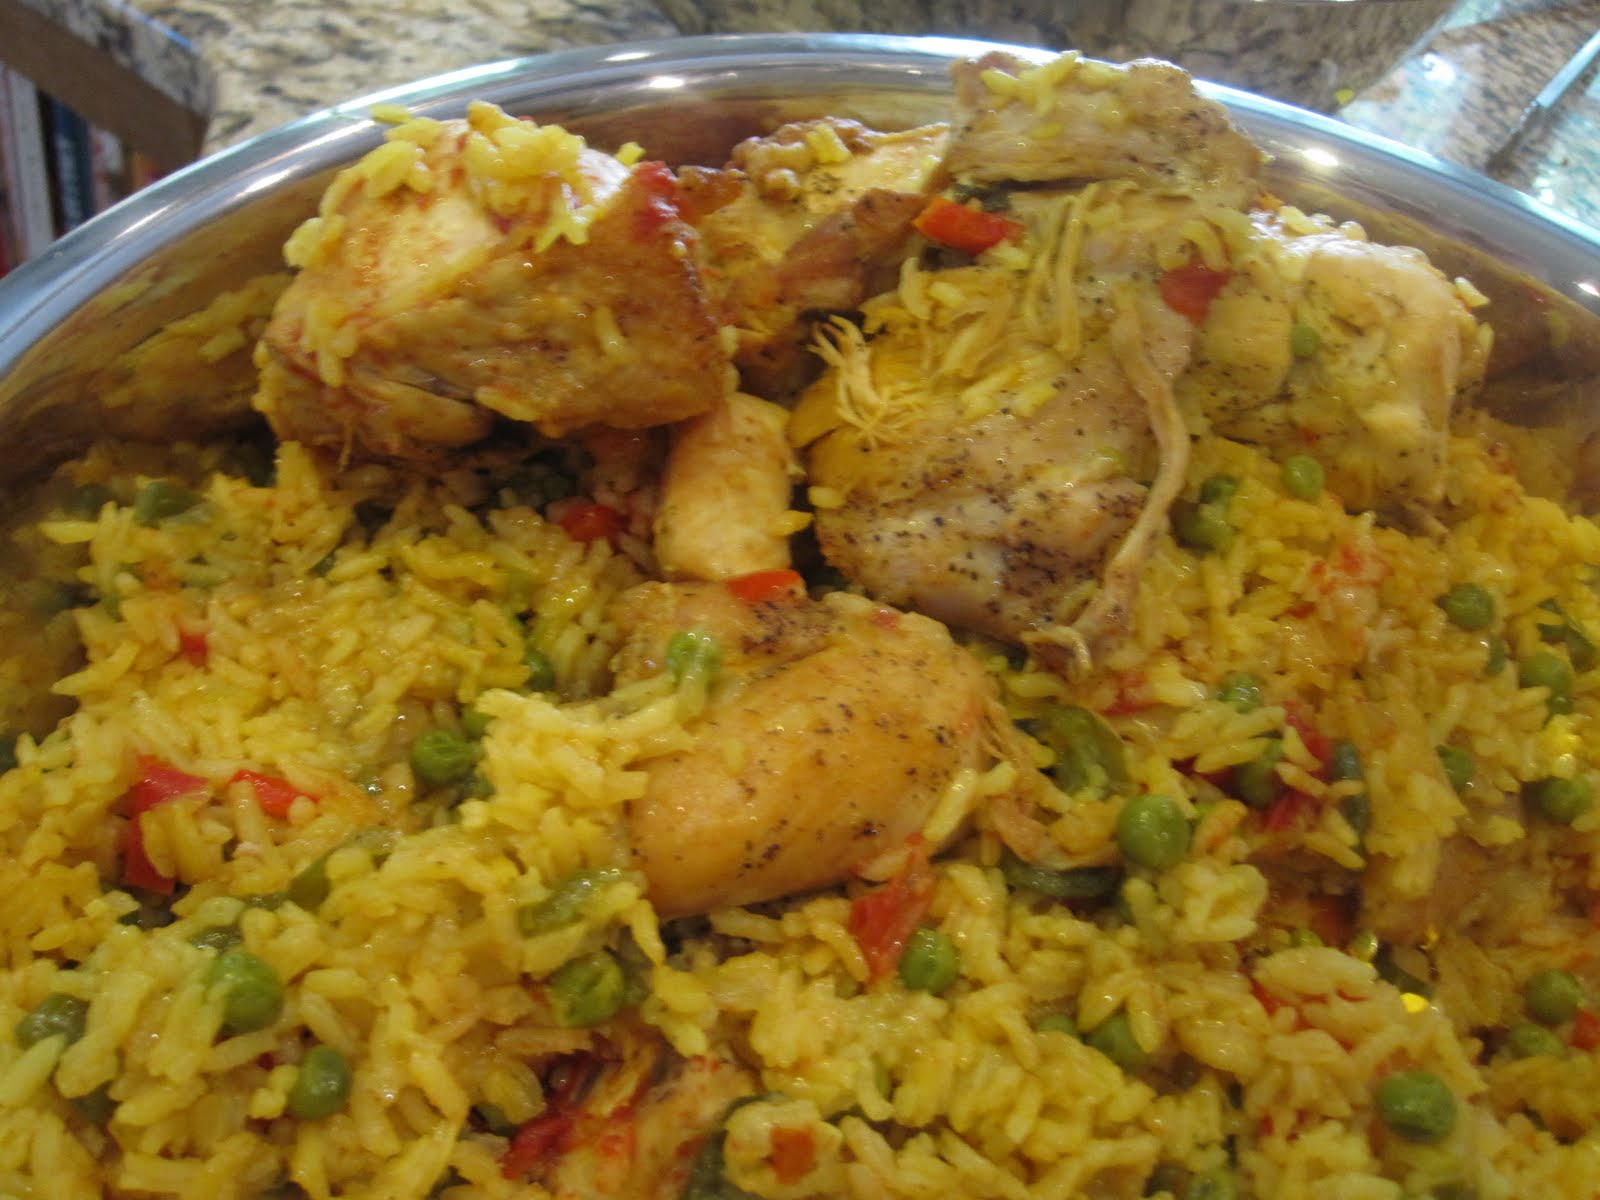 Dinner at Home: Yellow Rice and Chicken